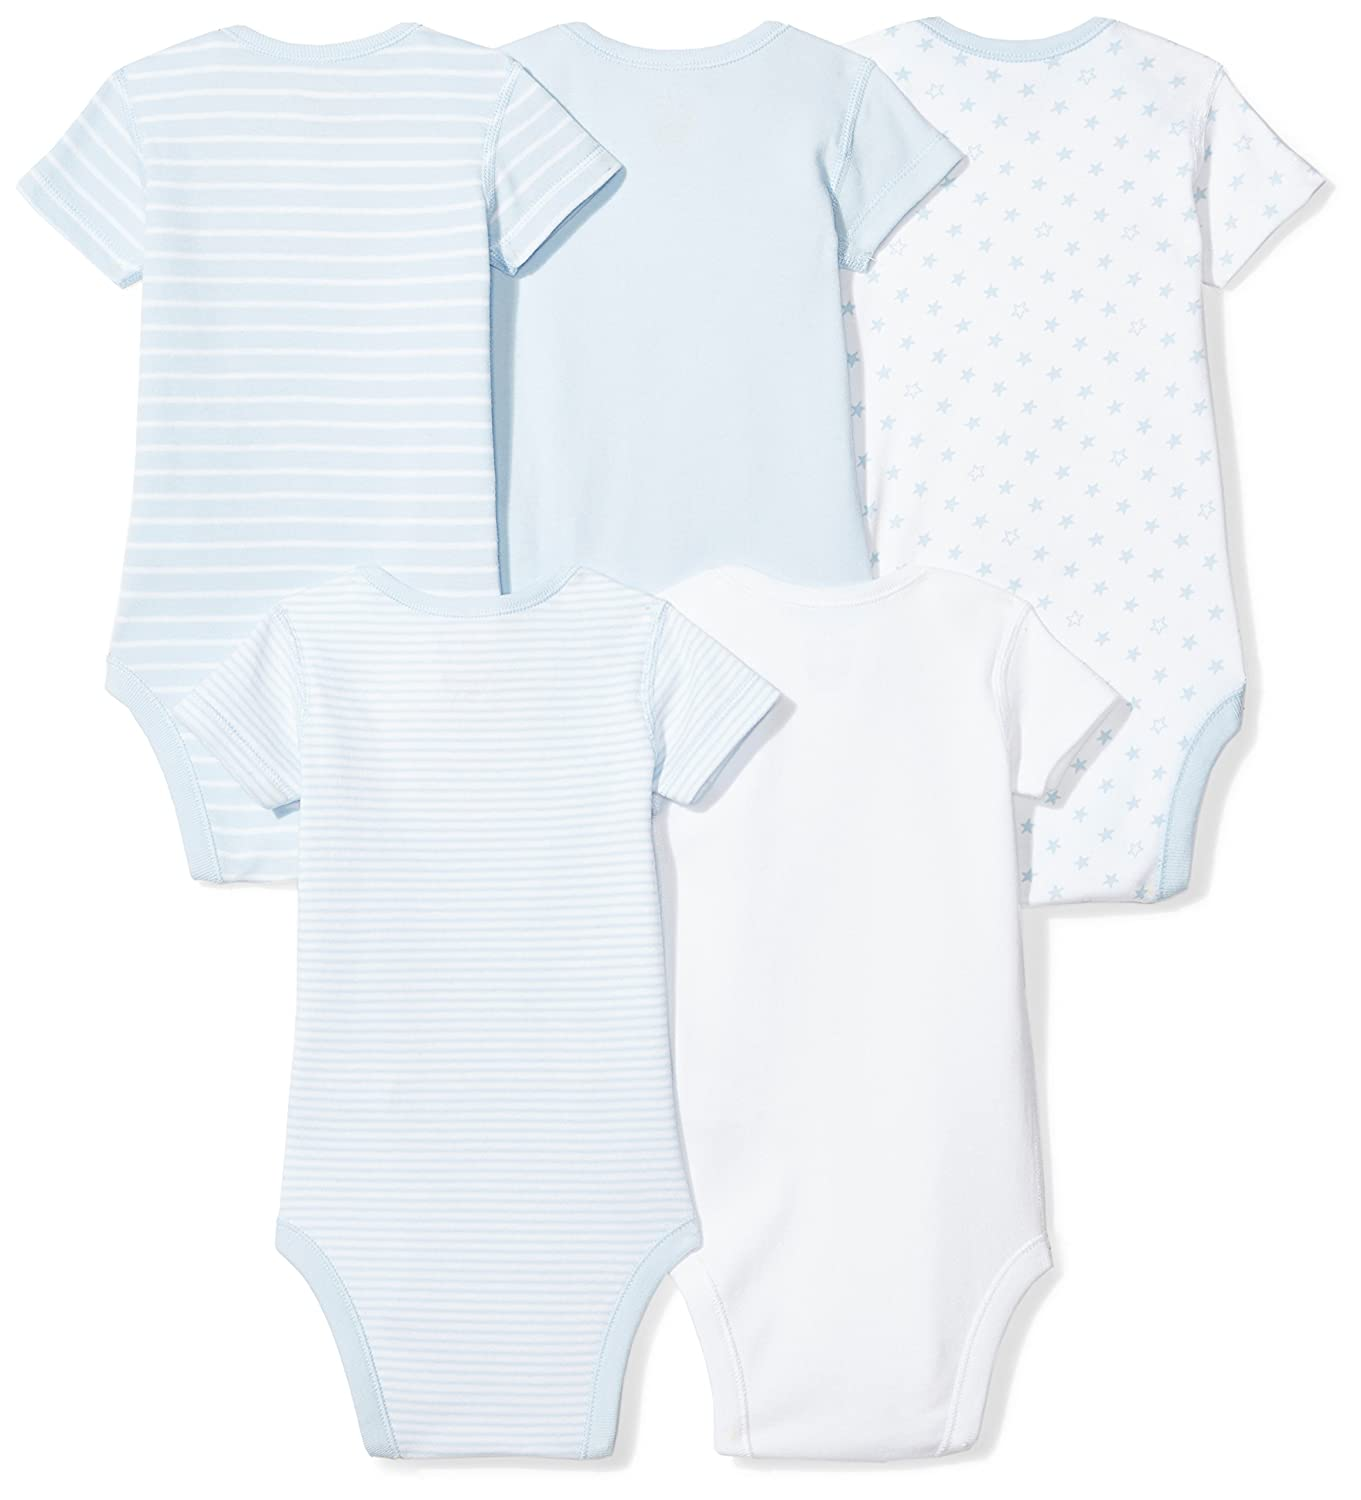 e992243ae12f Amazon.com  Moon and Back Baby Set of 5 Organic Short-Sleeve Bodysuits   Clothing